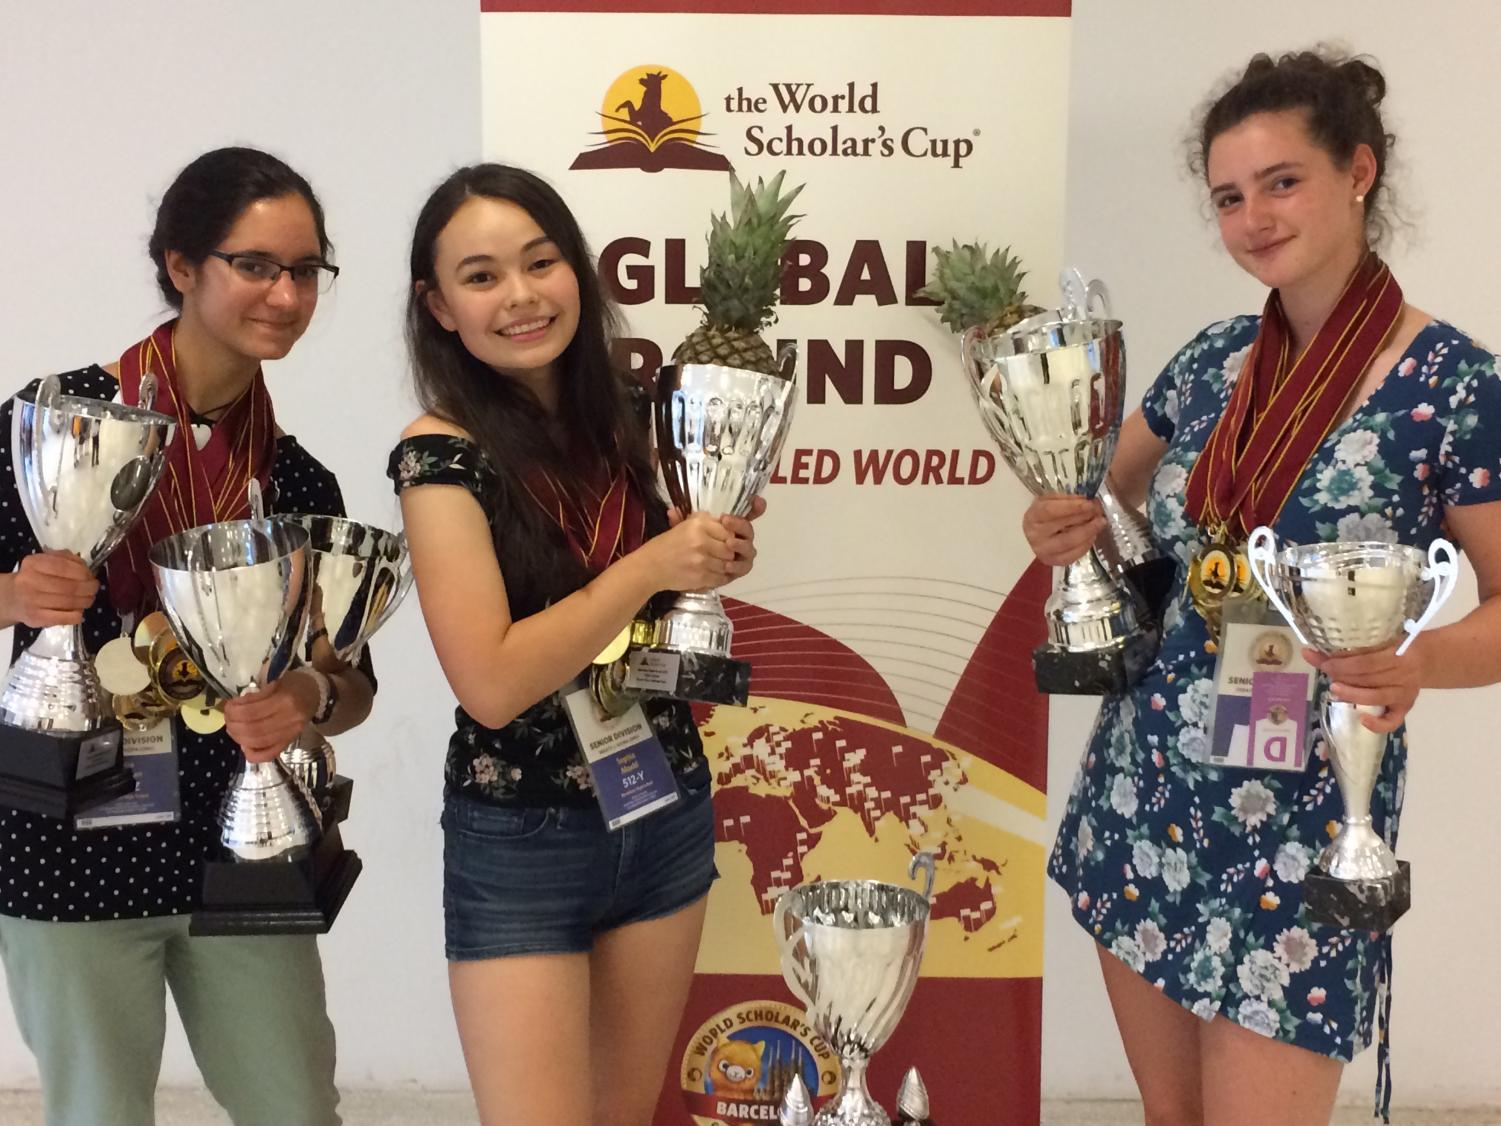 The World Scholars Cup club co-presidents and co-founders Sophia Maehl, Sophie Tsekov and Julia Riesman celebrate with trophies after winning the final round of the competition.